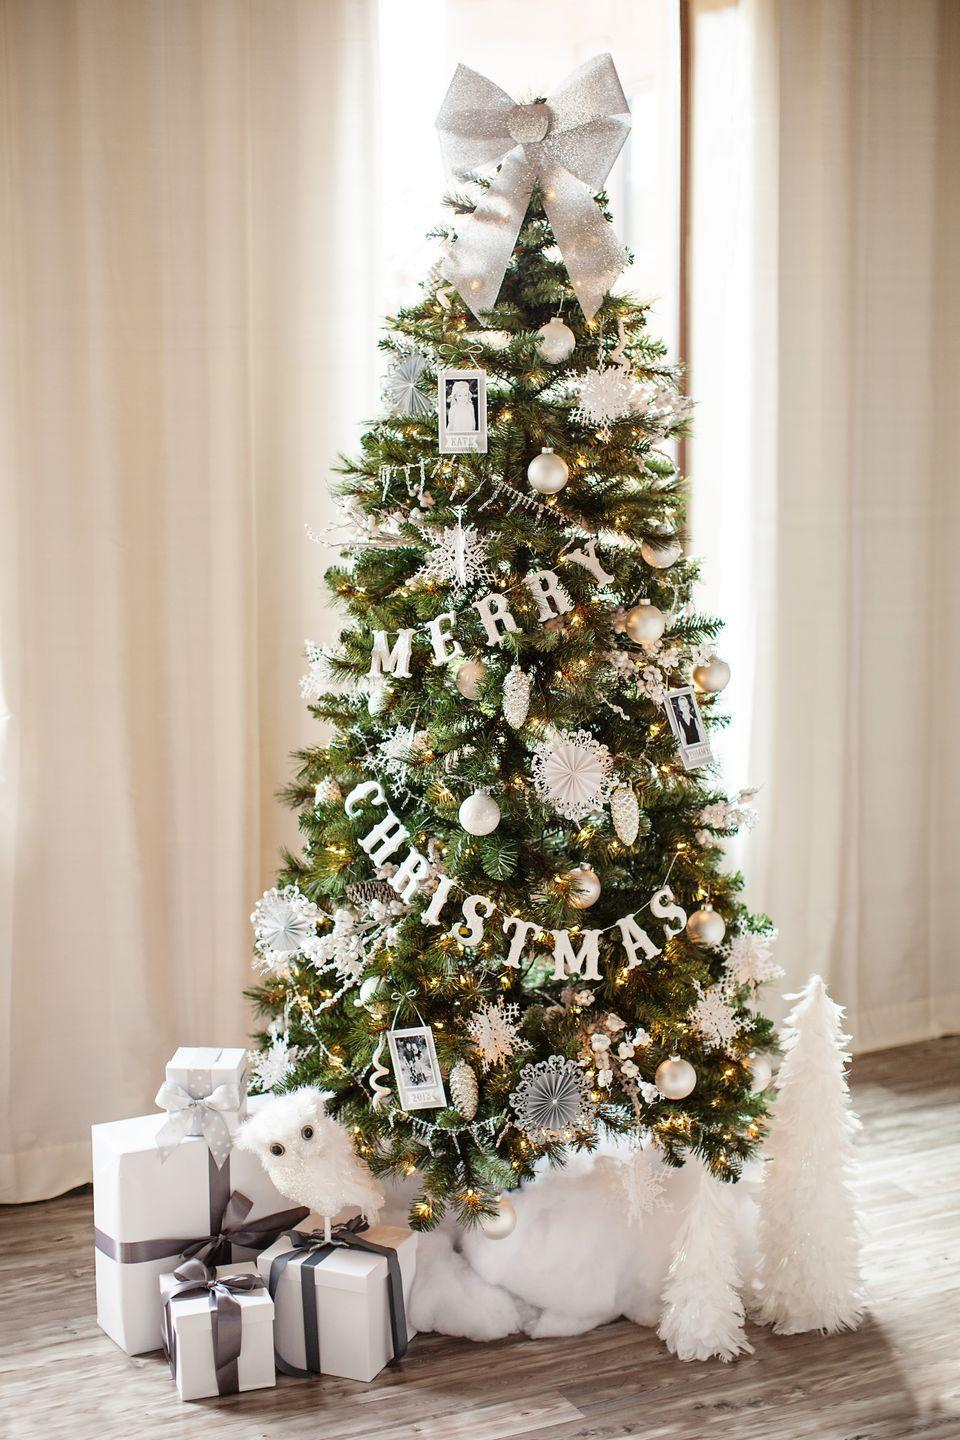 "<p>If you really want your tree to say ""Merry Christmas"" from the moment a guest walks in, don't be afraid to spell it out. A monochromatic tree from <a href=""http://www.thetomkatstudio.com/2013/11/michaelsdreamtreechallenge"" rel=""nofollow noopener"" target=""_blank"" data-ylk=""slk:The Tomkat Studio"" class=""link rapid-noclick-resp"">The Tomkat Studio</a> features a garland casting the season's greetings, which is paired with snowy white ornaments. </p>"